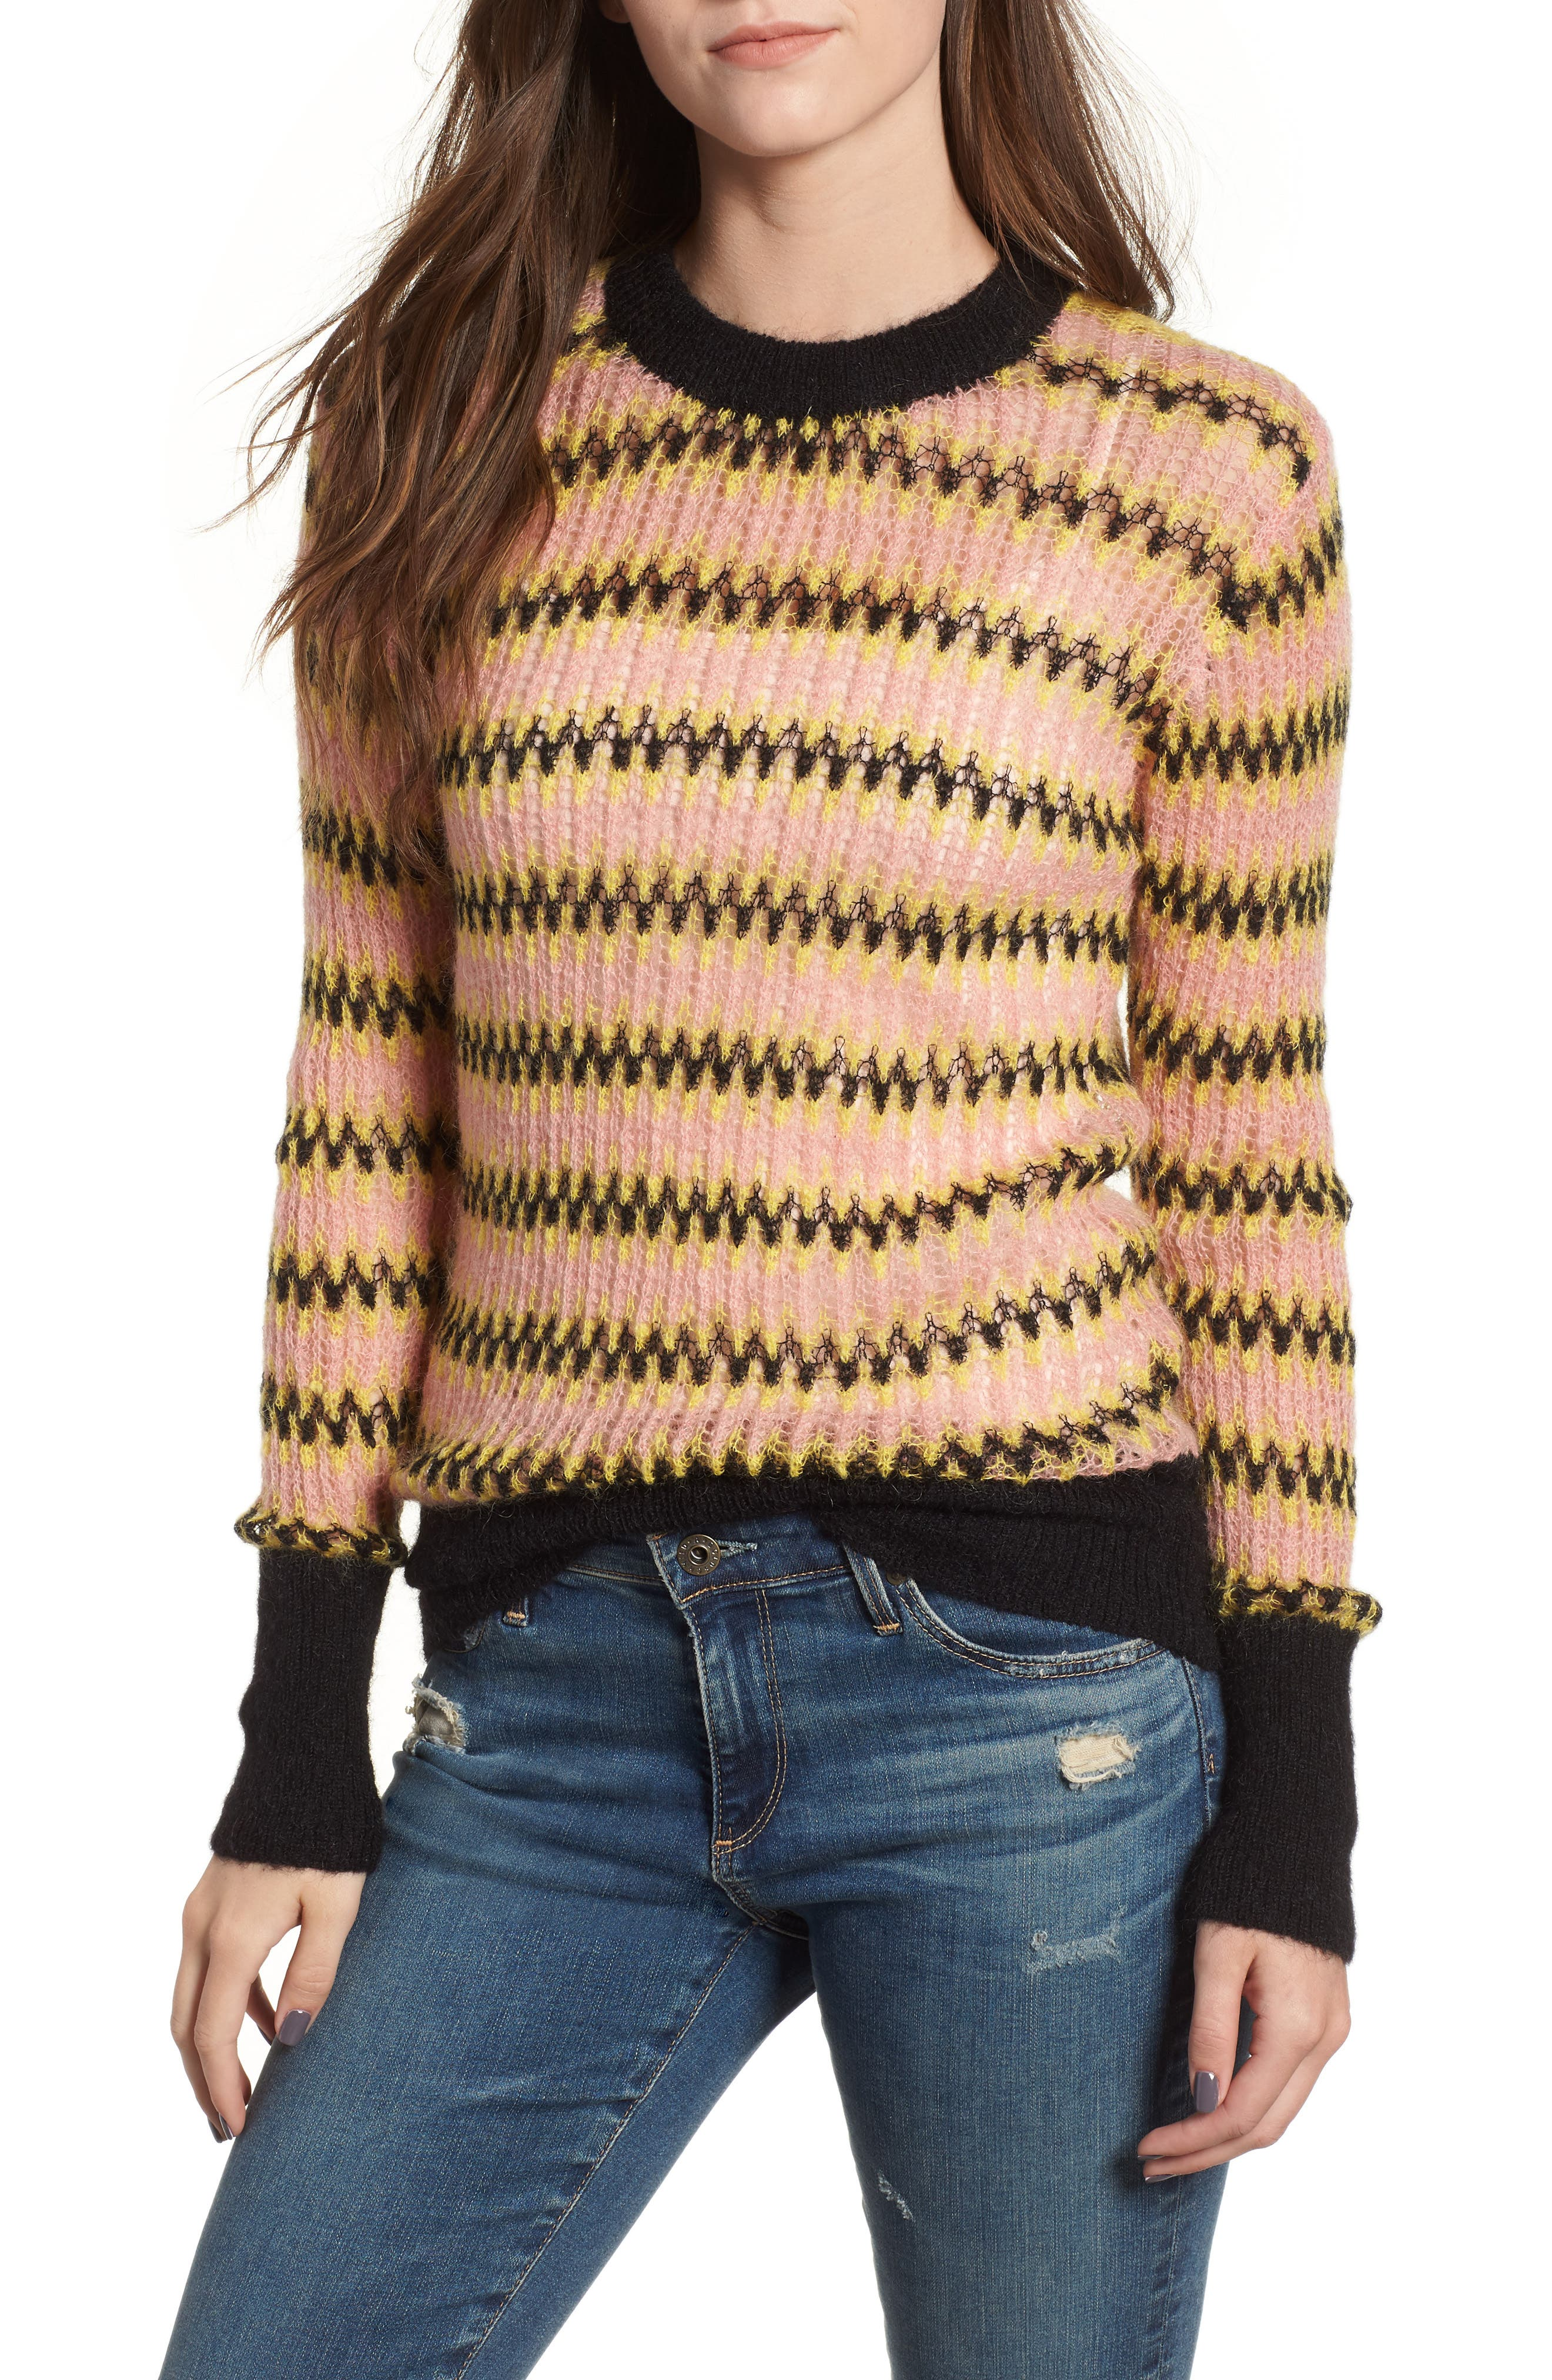 ZIG ZAG WOOL BLEND SWEATER from Nordstrom